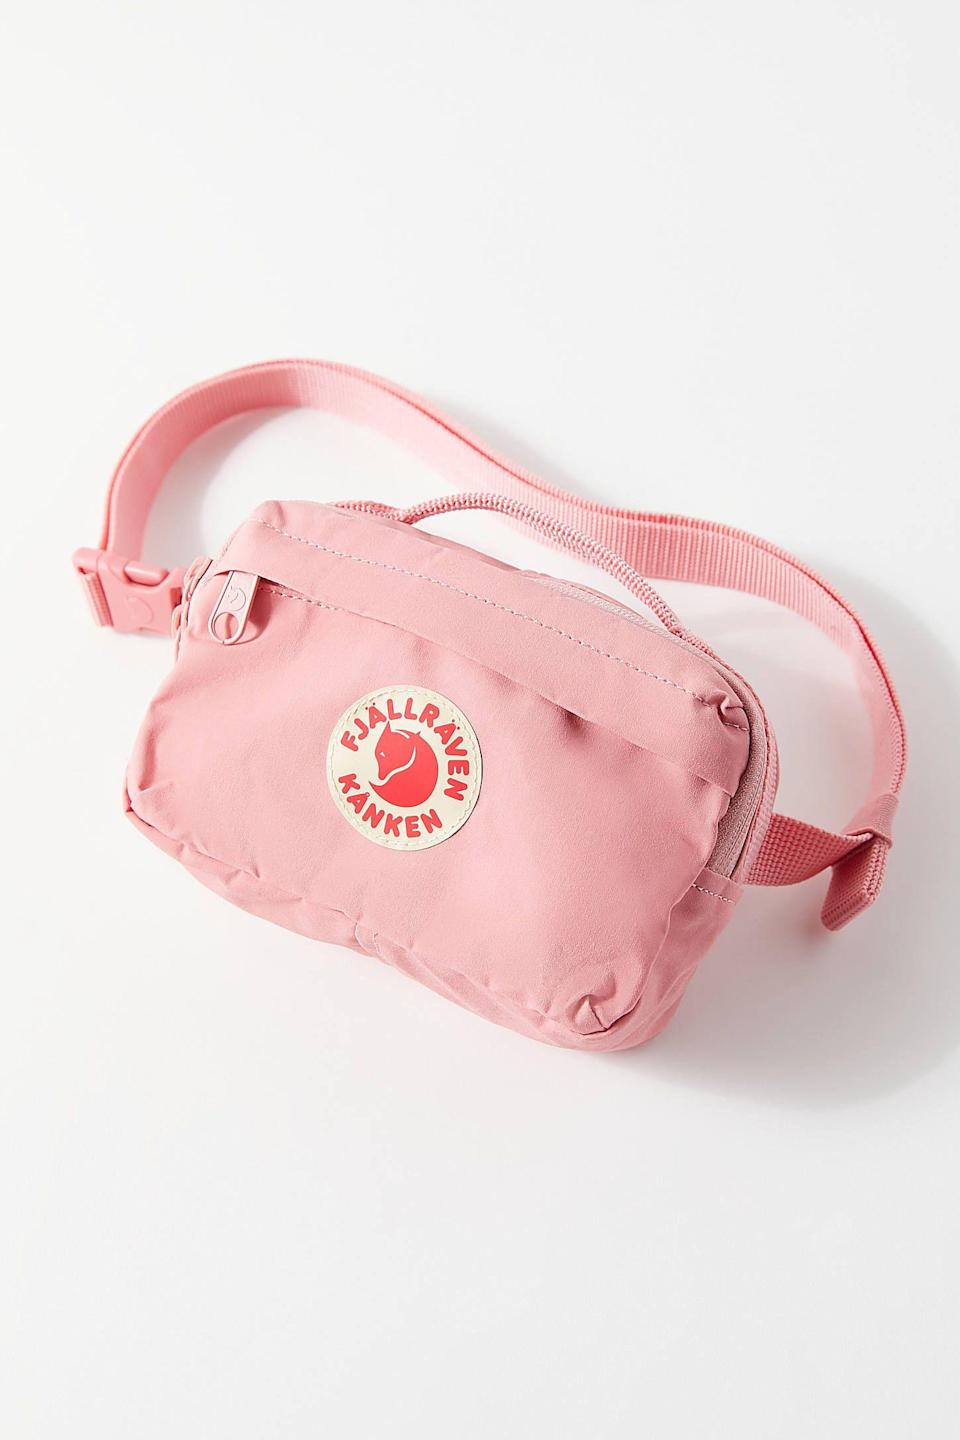 "<p><strong>Fjallraven</strong></p><p>urbanoutfitters.com</p><p><strong>$45.00</strong></p><p><a href=""https://go.redirectingat.com?id=74968X1596630&url=https%3A%2F%2Fwww.urbanoutfitters.com%2Fshop%2Ffjallraven-knken-belt-bag&sref=https%3A%2F%2Fwww.seventeen.com%2Ffashion%2Fg34701248%2Furban-outfitters-2020-black-friday-sale%2F"" rel=""nofollow noopener"" target=""_blank"" data-ylk=""slk:Shop Now"" class=""link rapid-noclick-resp"">Shop Now</a></p><p>For when you don't feel like carrying around your whole Kanken backpack.</p>"